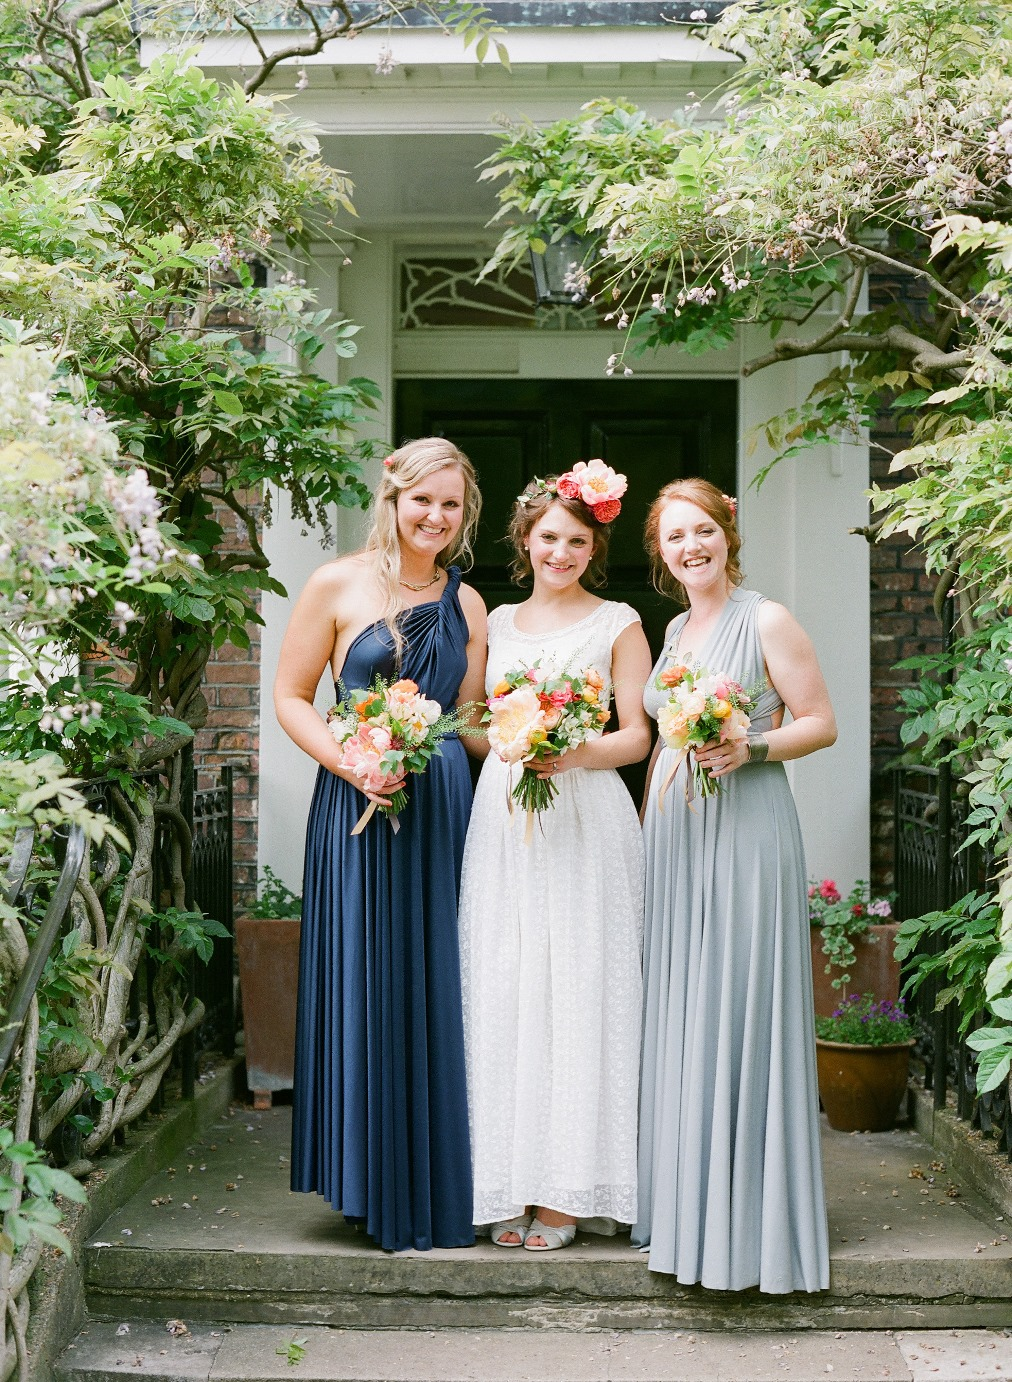 Bride & Bridesmaids - A 1940s Wedding Dress for a Sweet Early Summer Wedding from Taylor & Porter Photography